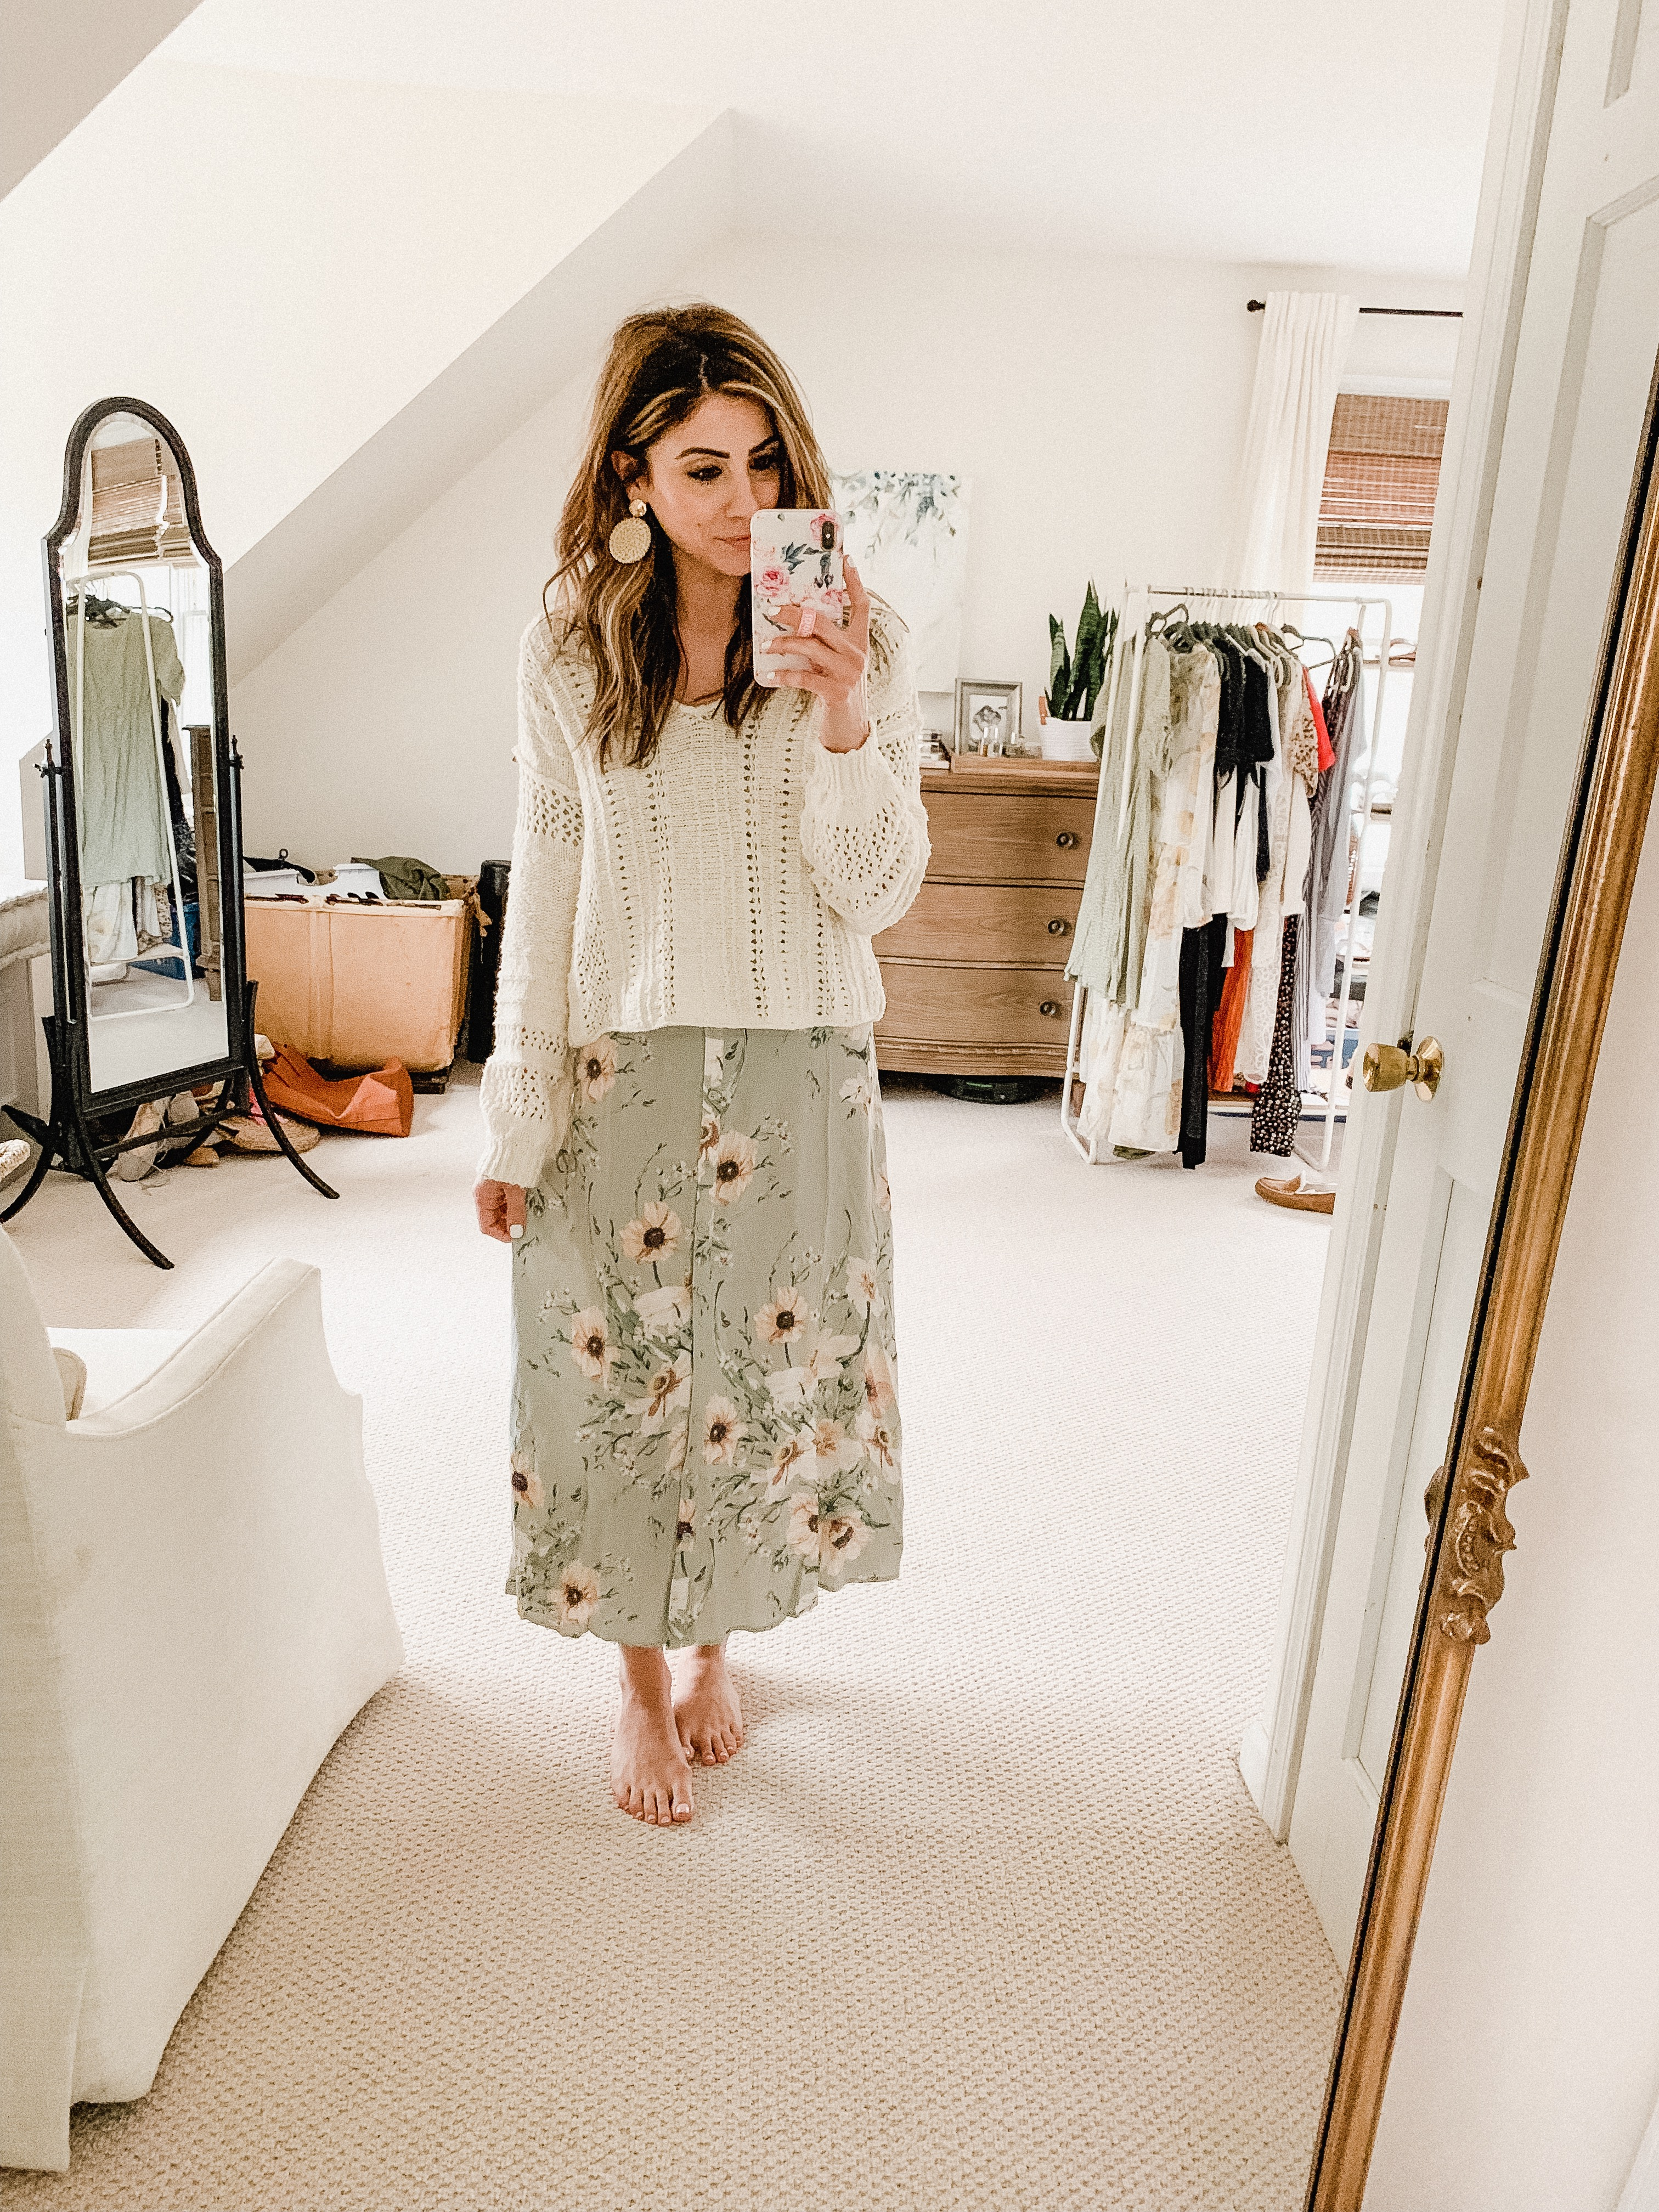 Connecticut life and style blogger Lauren McBride shares Easter Dresses Under $50 that are great for the holiday and for the spring season.